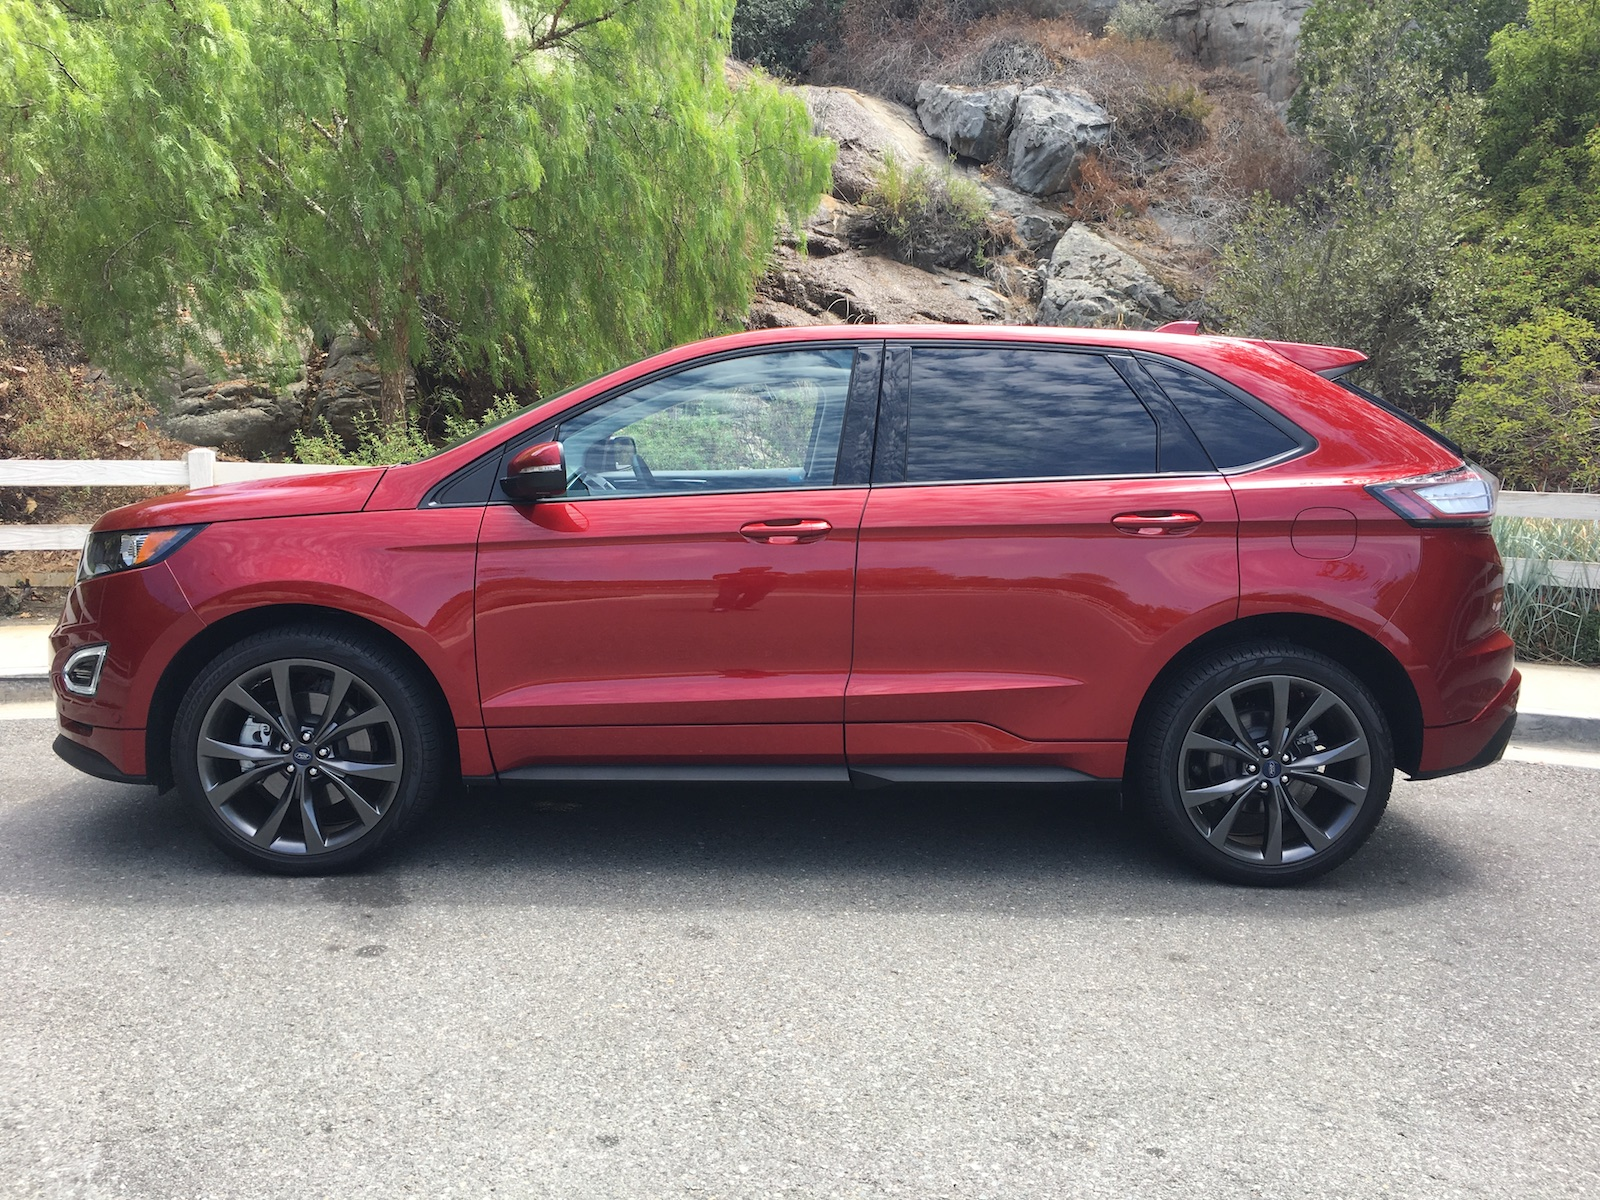 Earlier I Mentioned That The Ford Edge Sport Is Nearly Perfect When It Comes To Design With A Few Minor Cosmetic Changes This Stylish Crossover Goes From